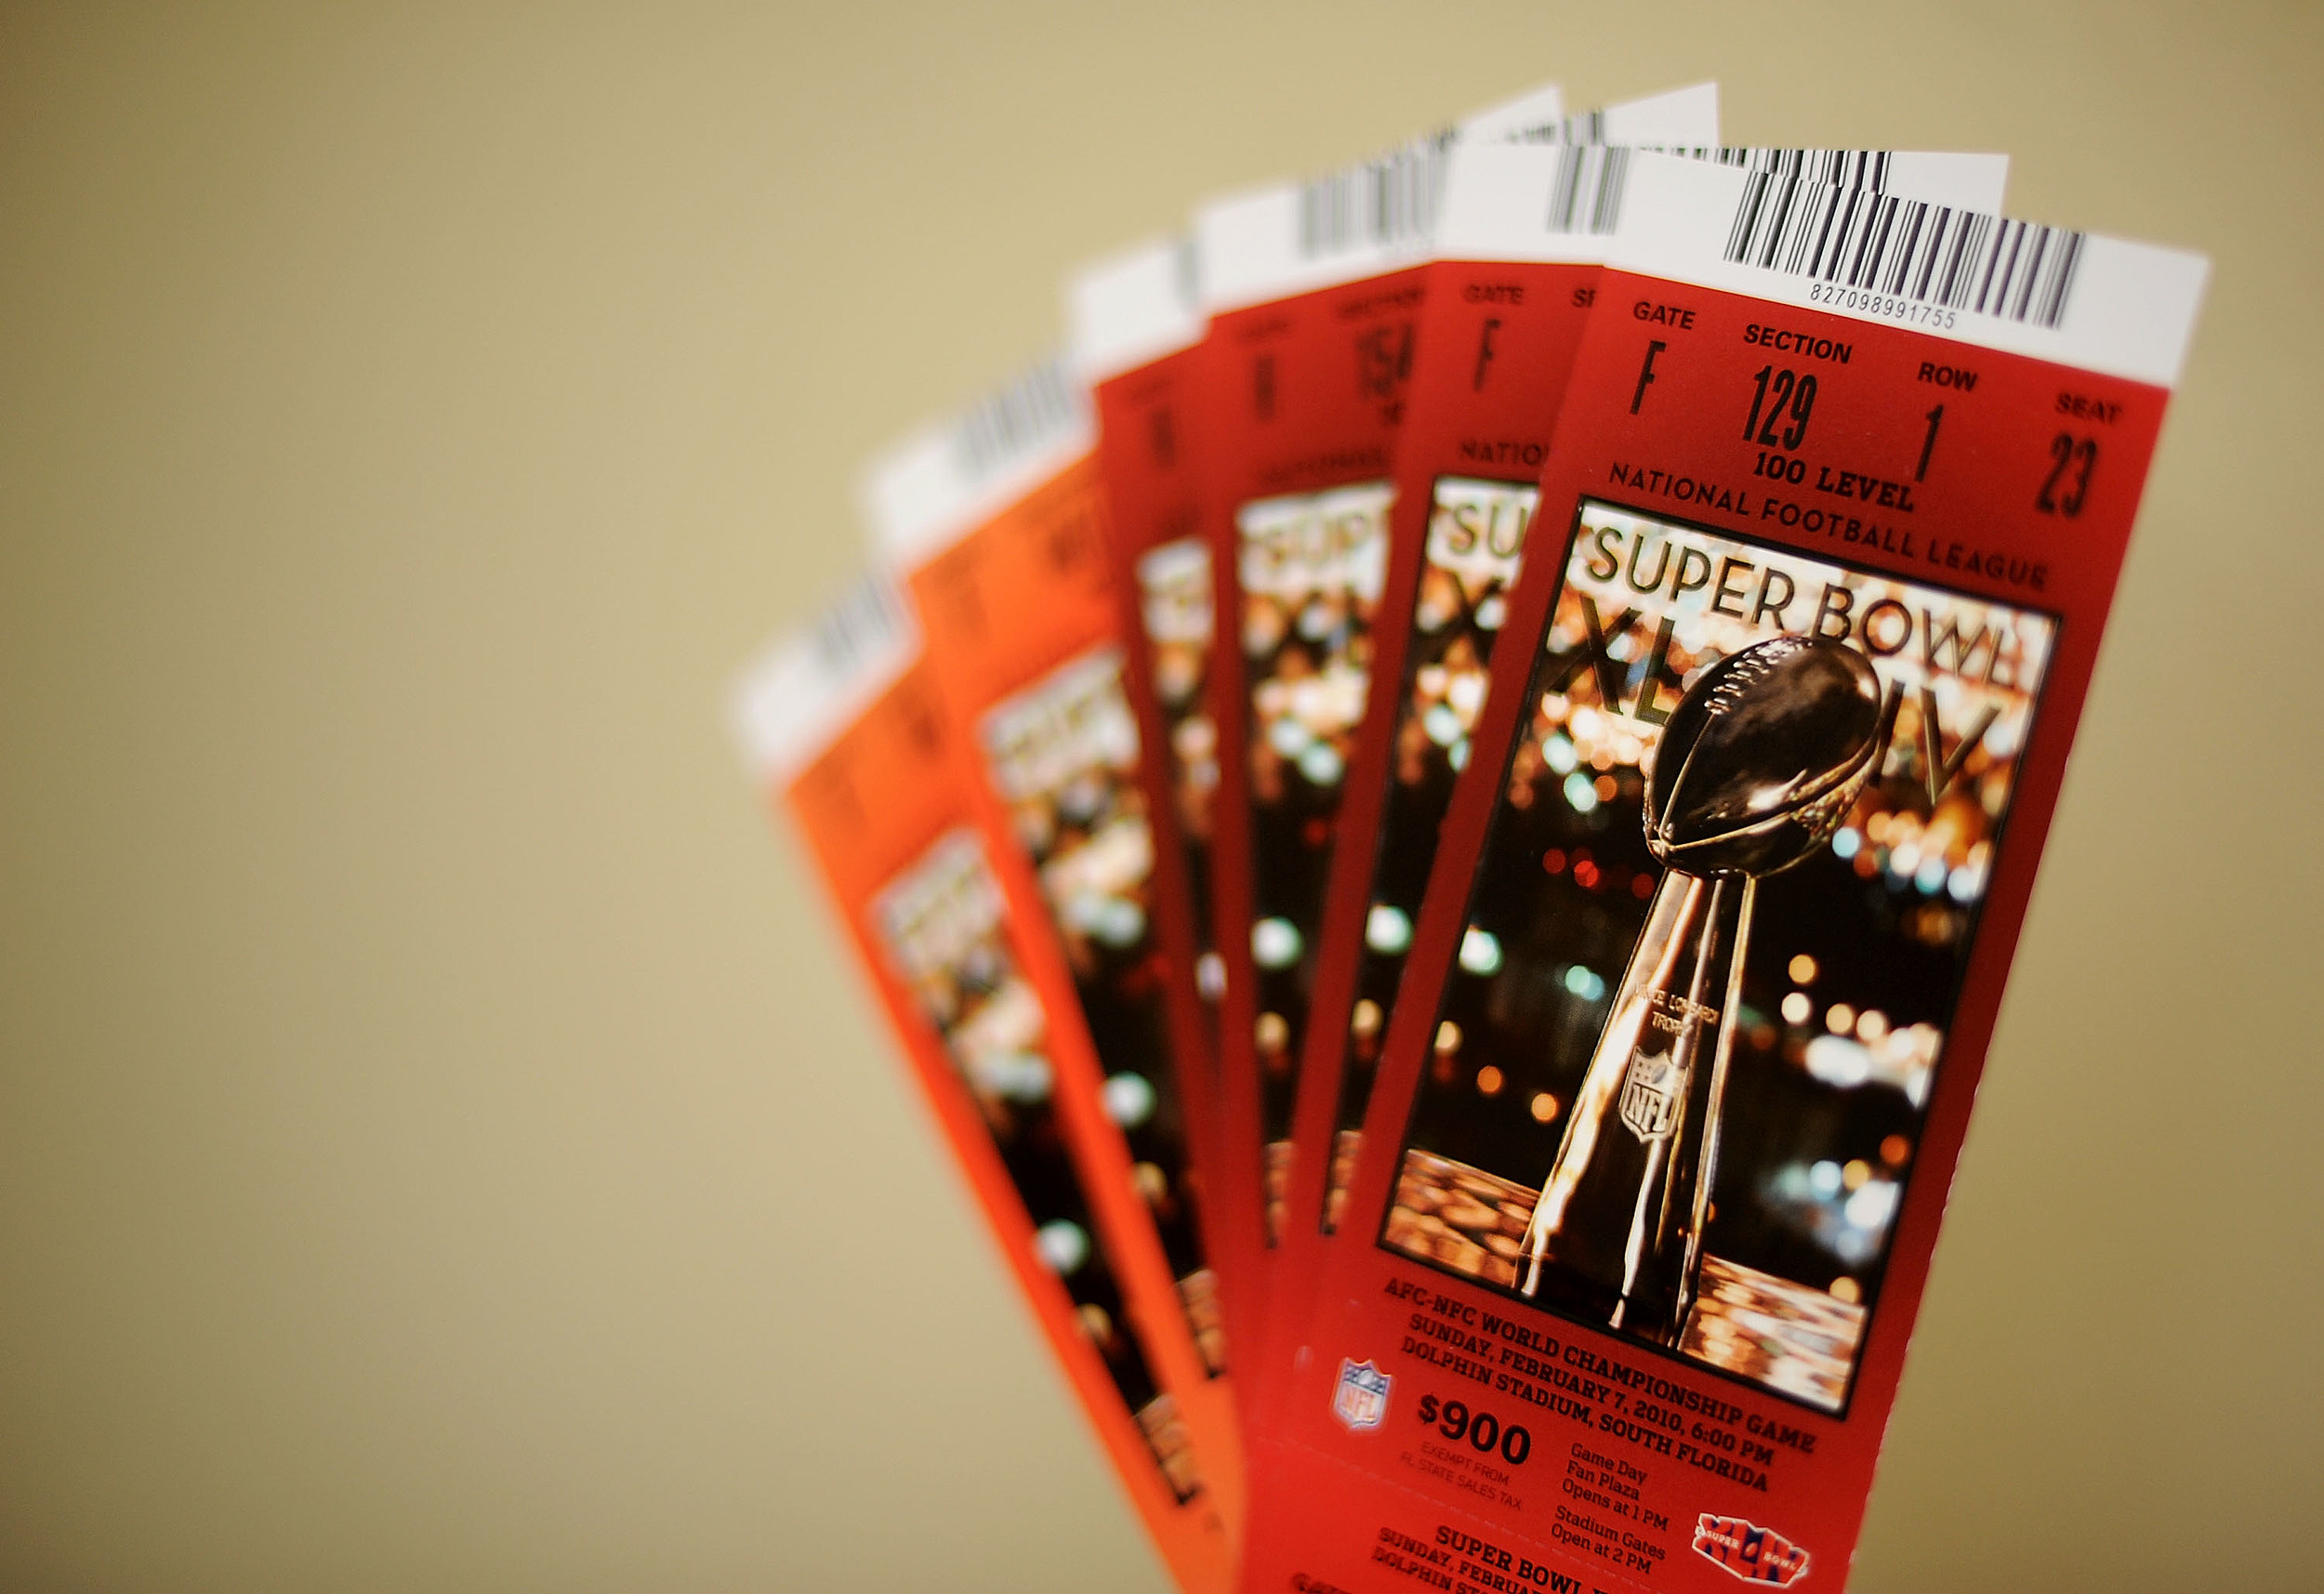 Superbowl tickets available but not cheap